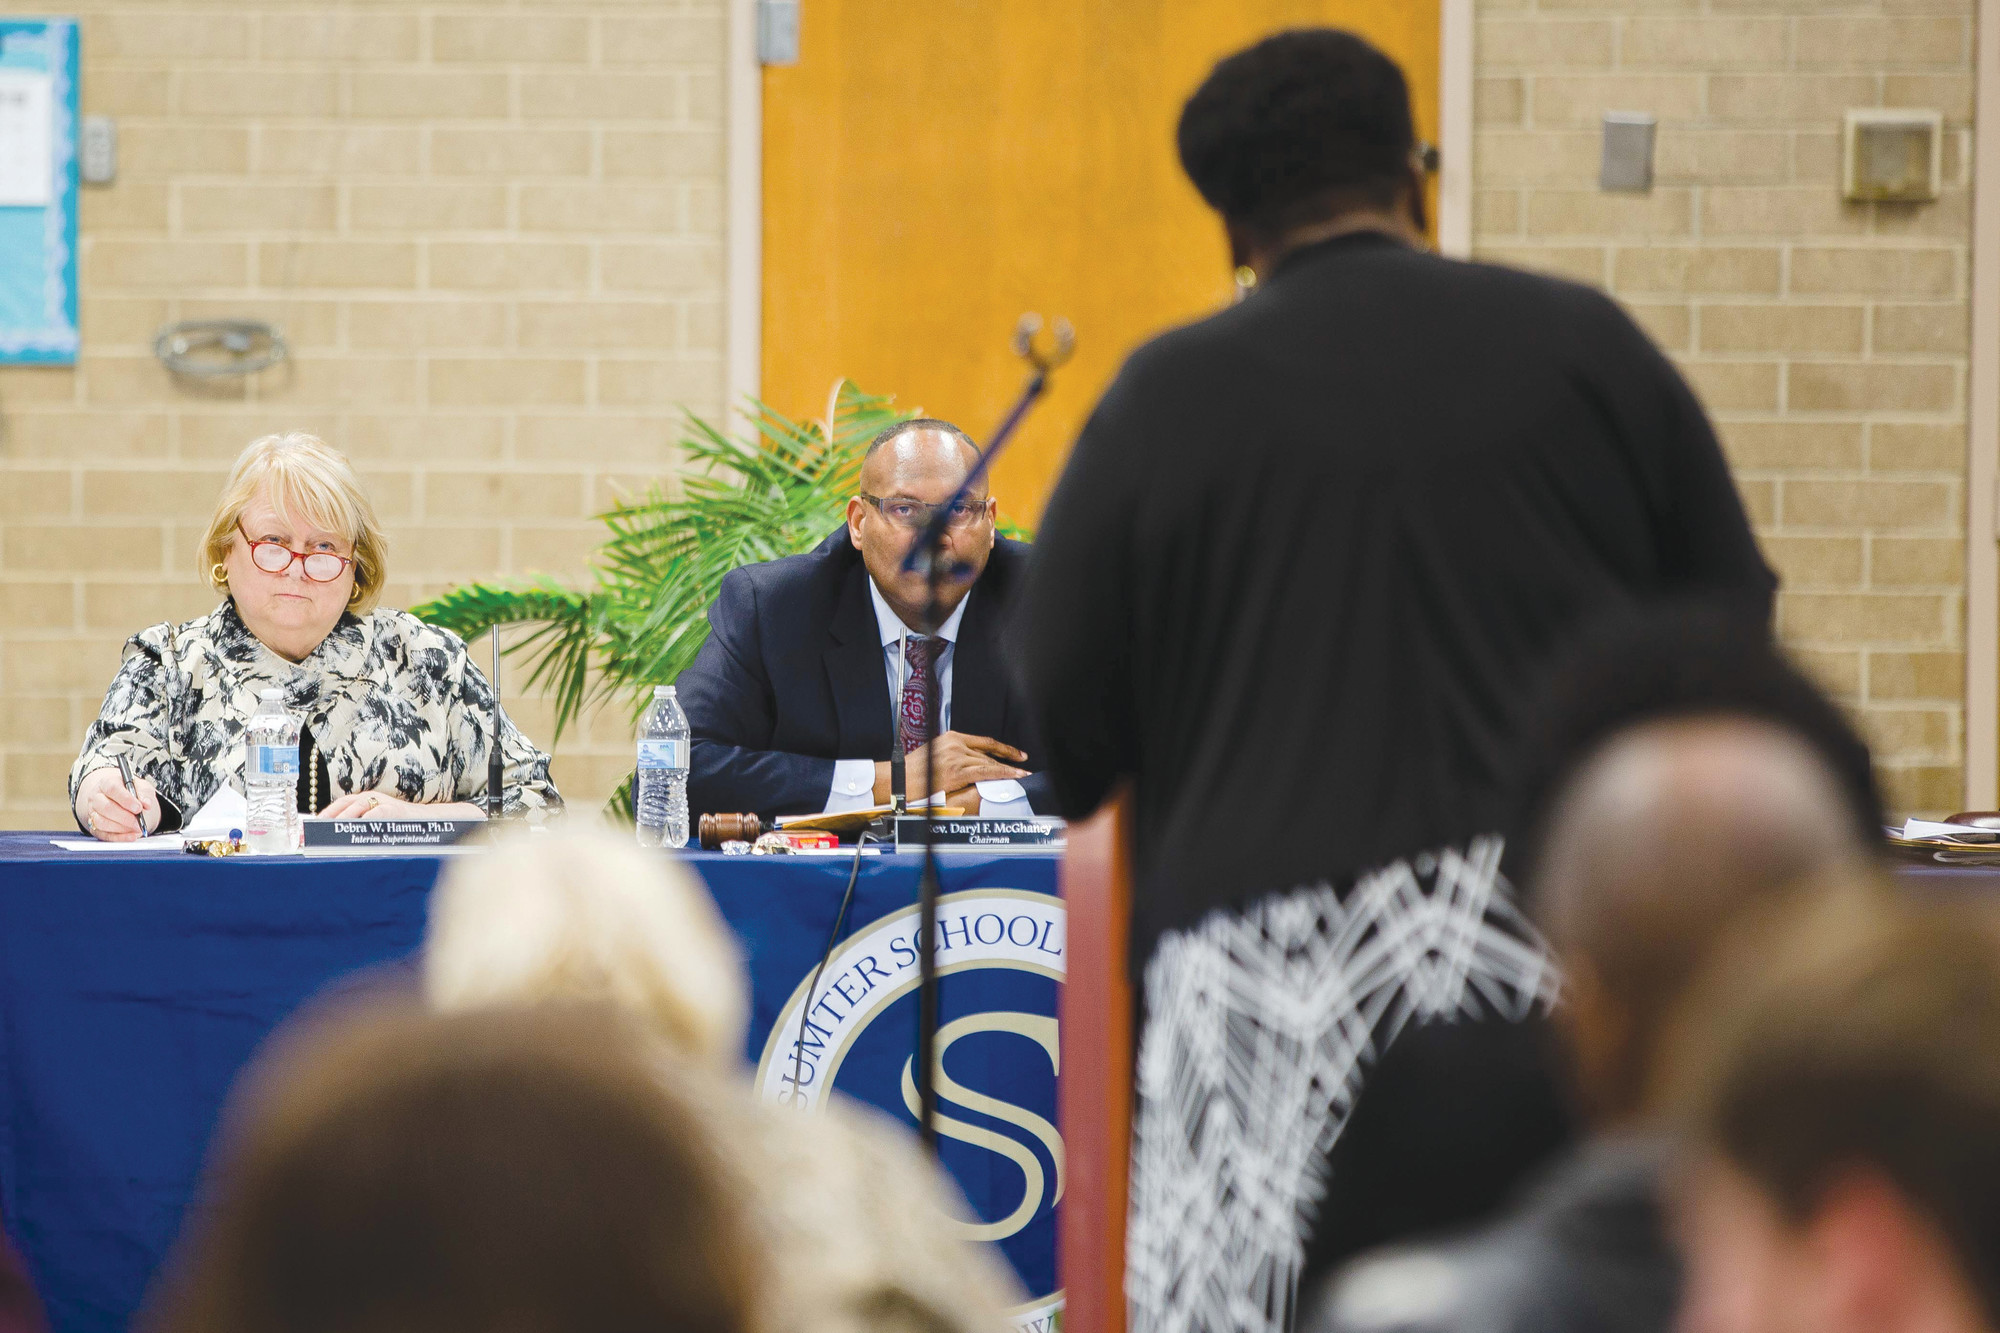 Sumter School District Interim Superintendent Debbie Hamm listens to remarks prior to addressing those in attendance at Sumter High School on Monday.